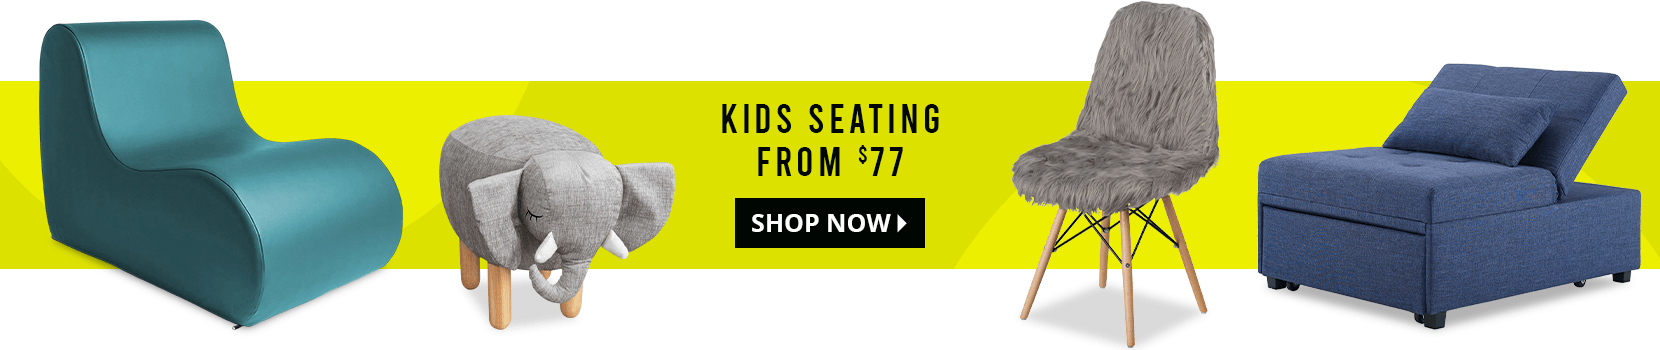 kids seating from $77. shop now